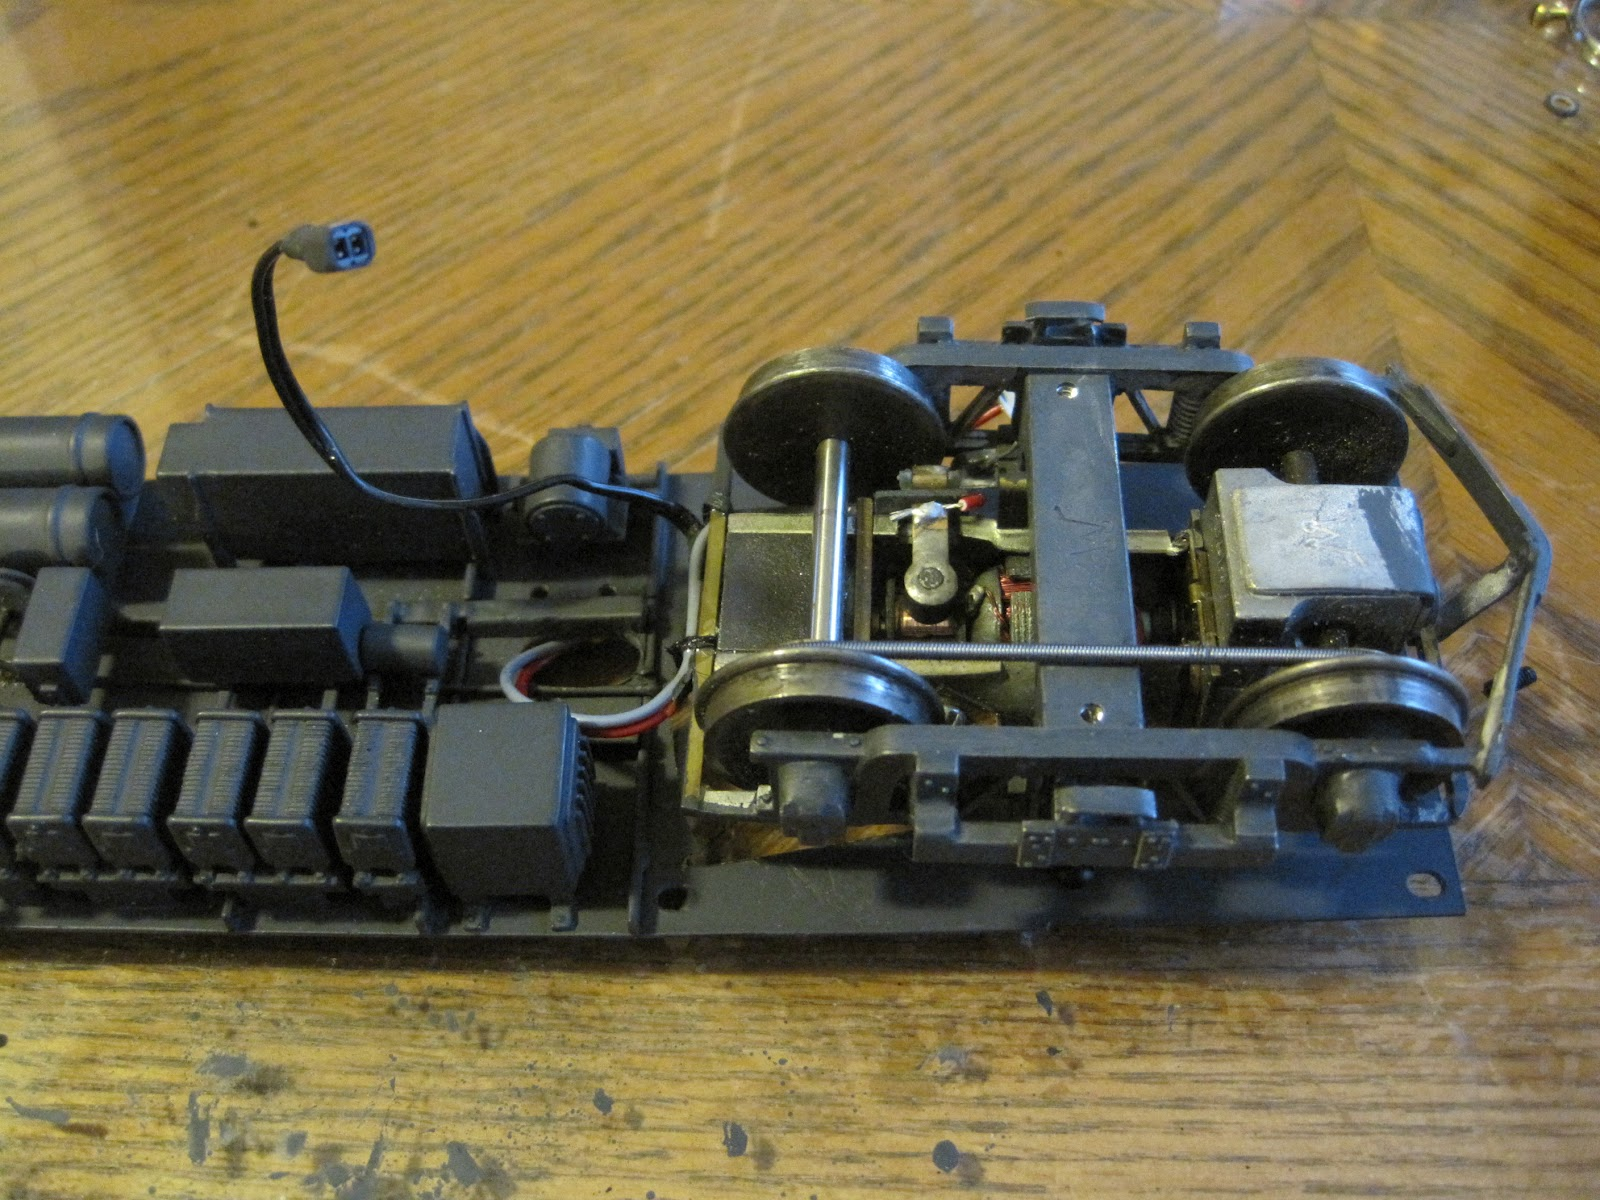 Modeling Insulls Empire In O Scale Sunset Nsl Silverliners 9b Gauge Track Wiring The Photo Above Shows Power Truck Floor Prior To Attachmant Interior Wires Can Be Seen Tied